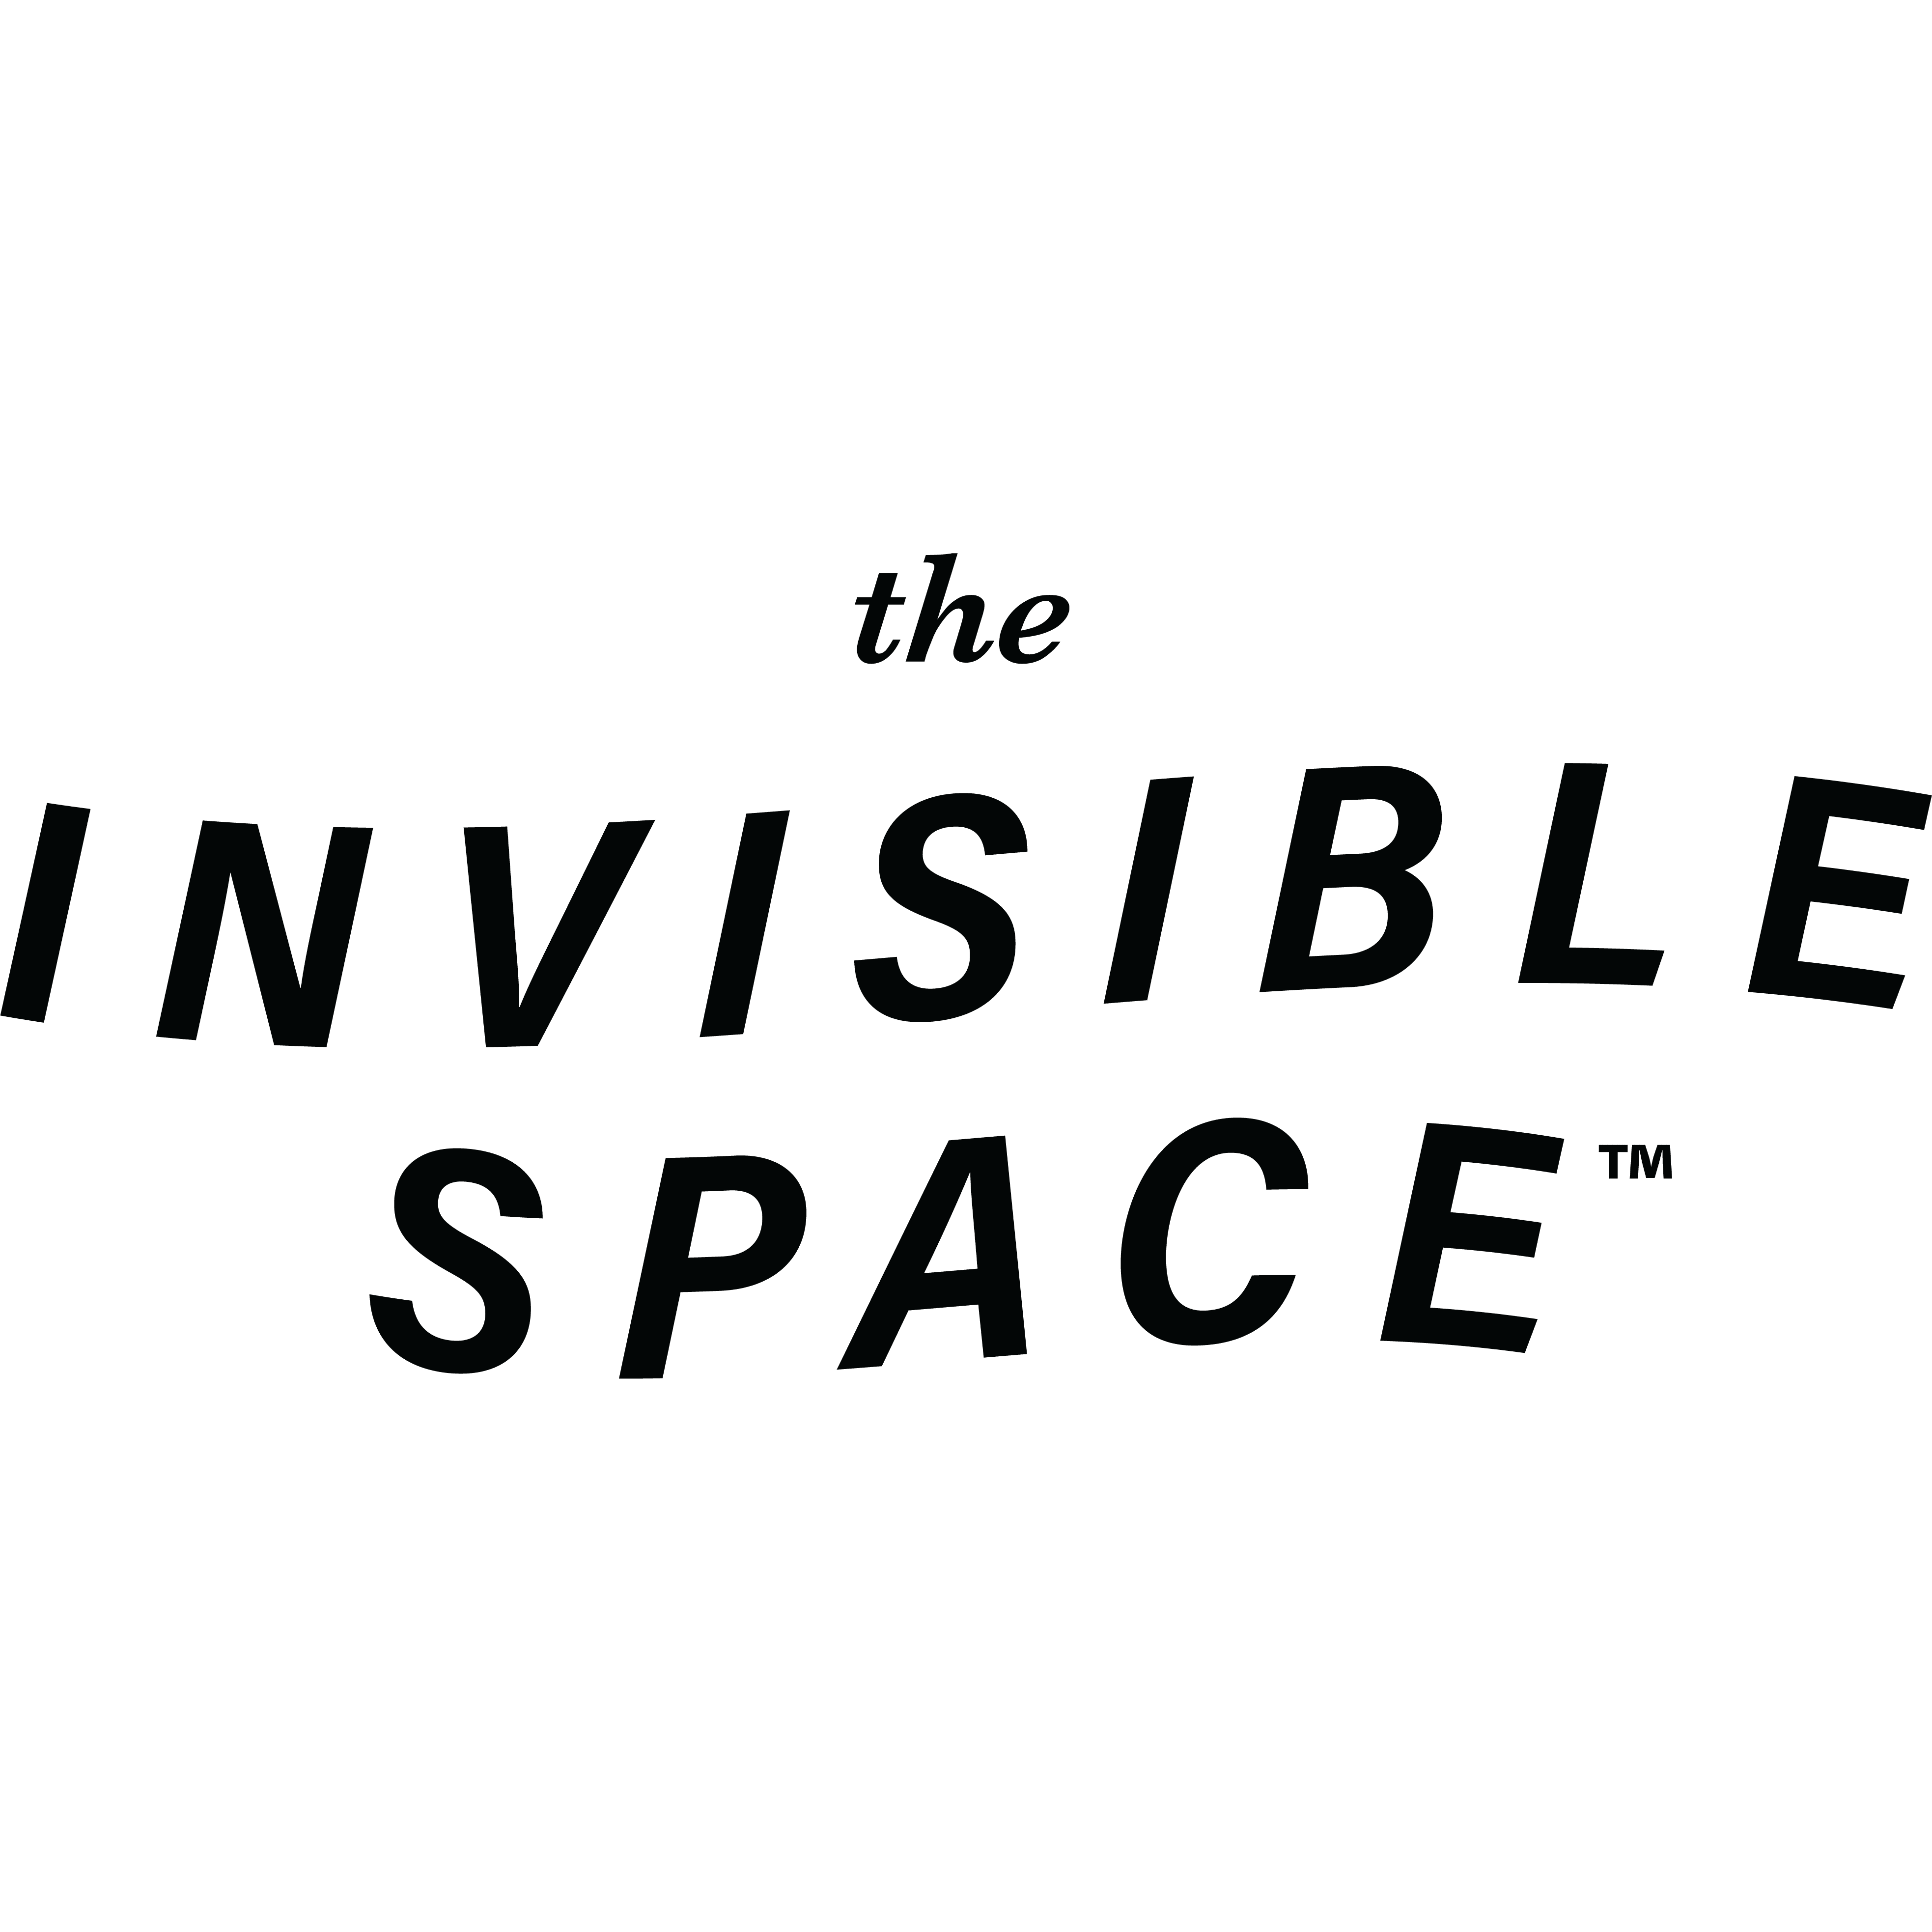 Brandon Breaux's The Invisible Space